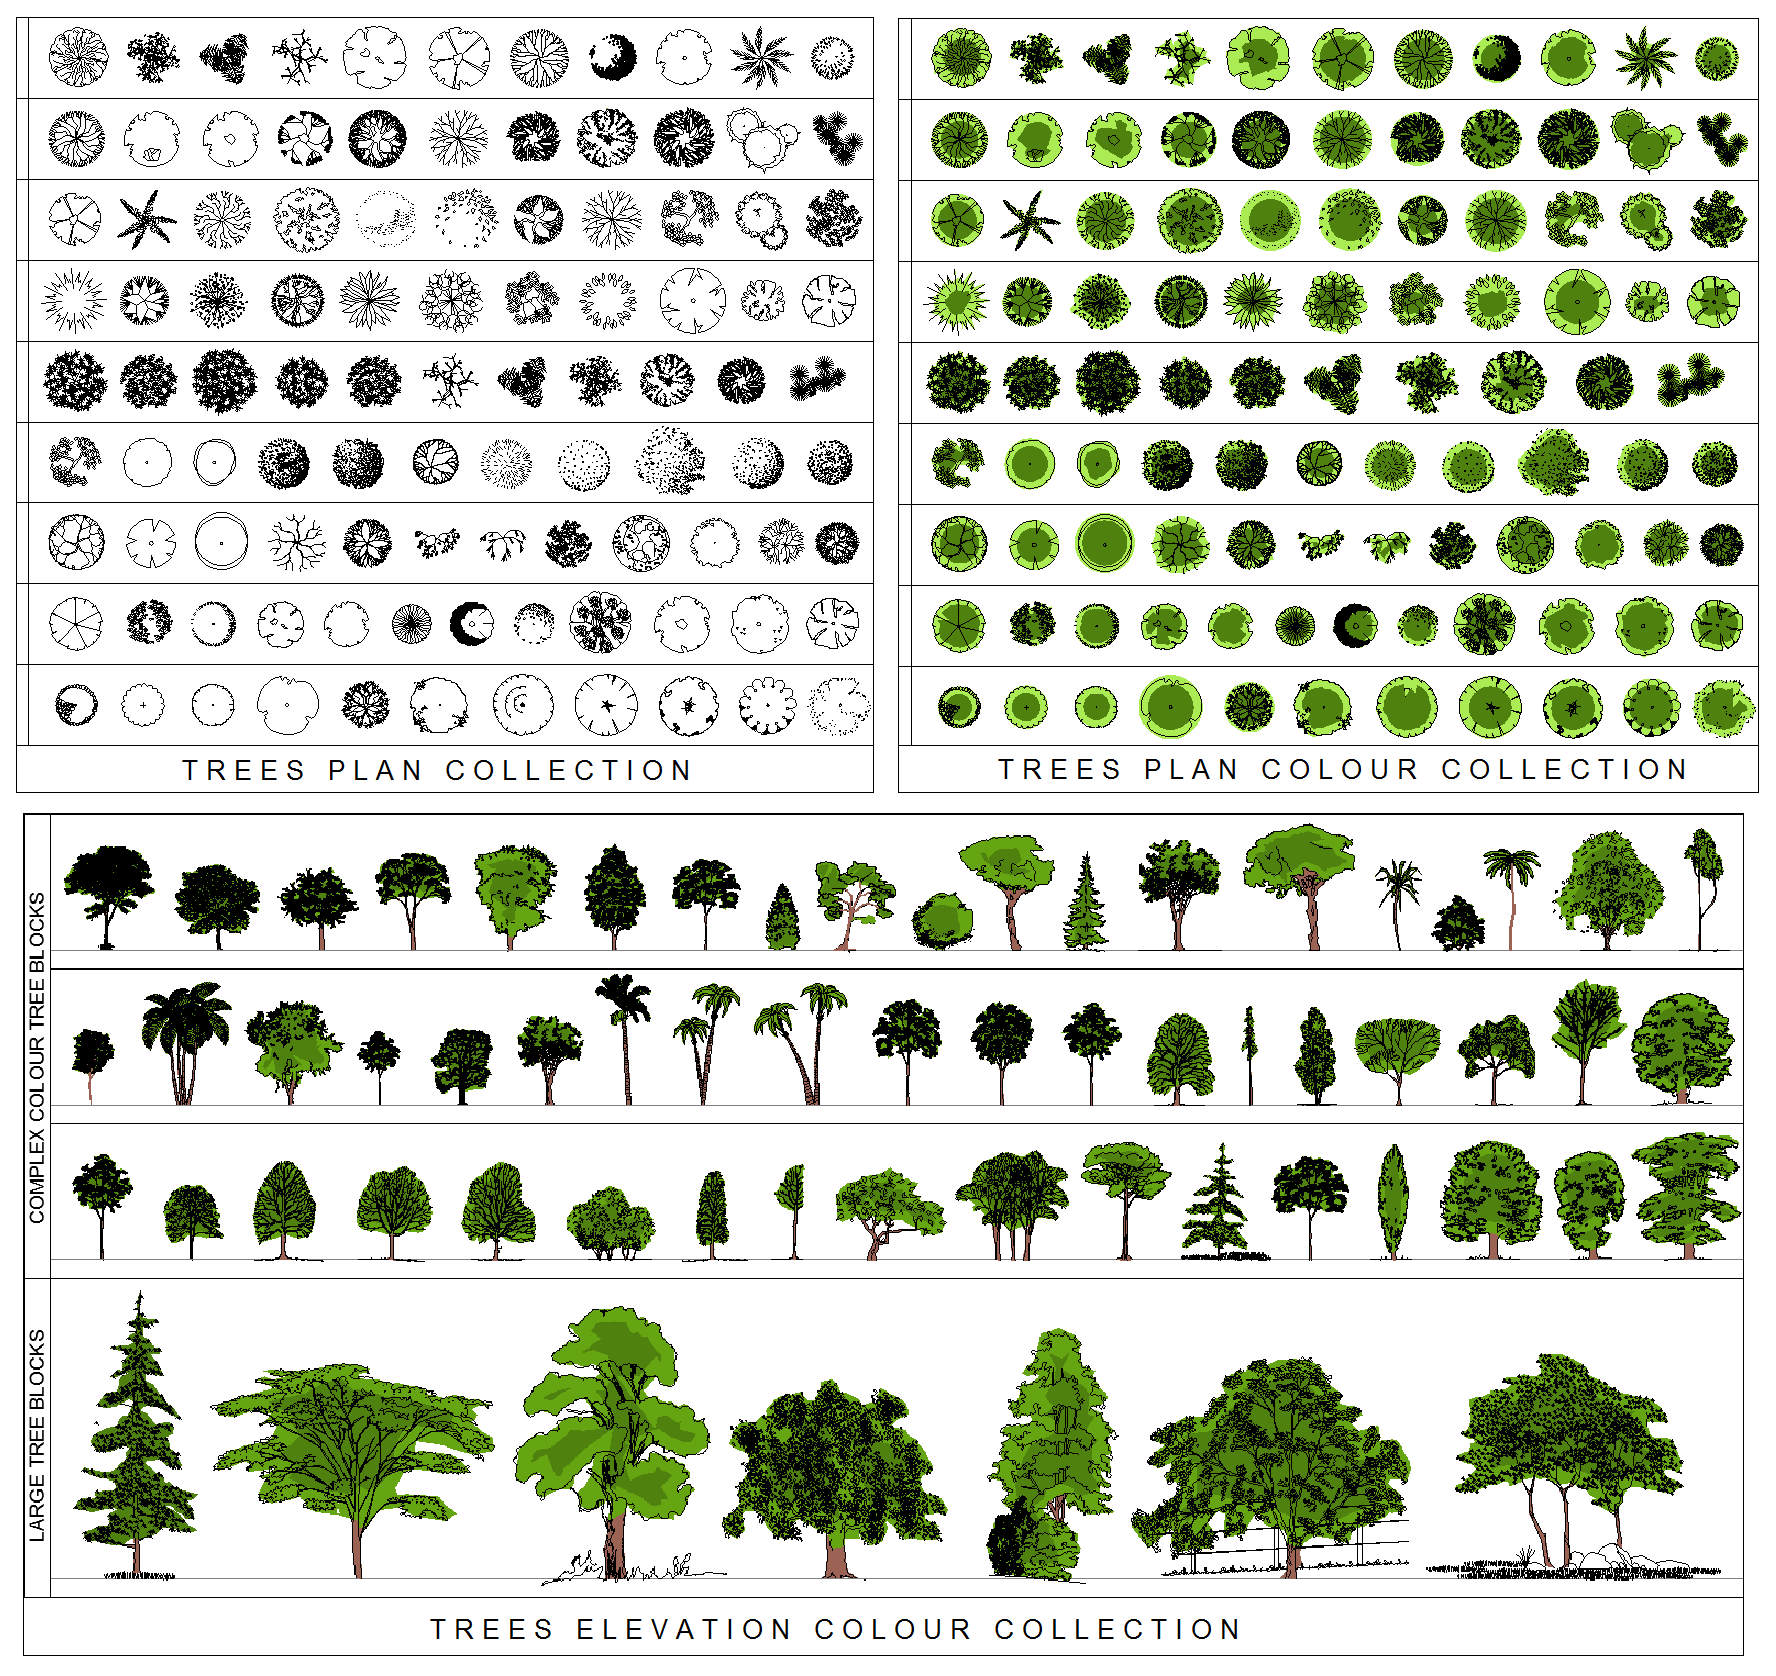 Architectural Trees Png Tr02 tree collection bundle png.